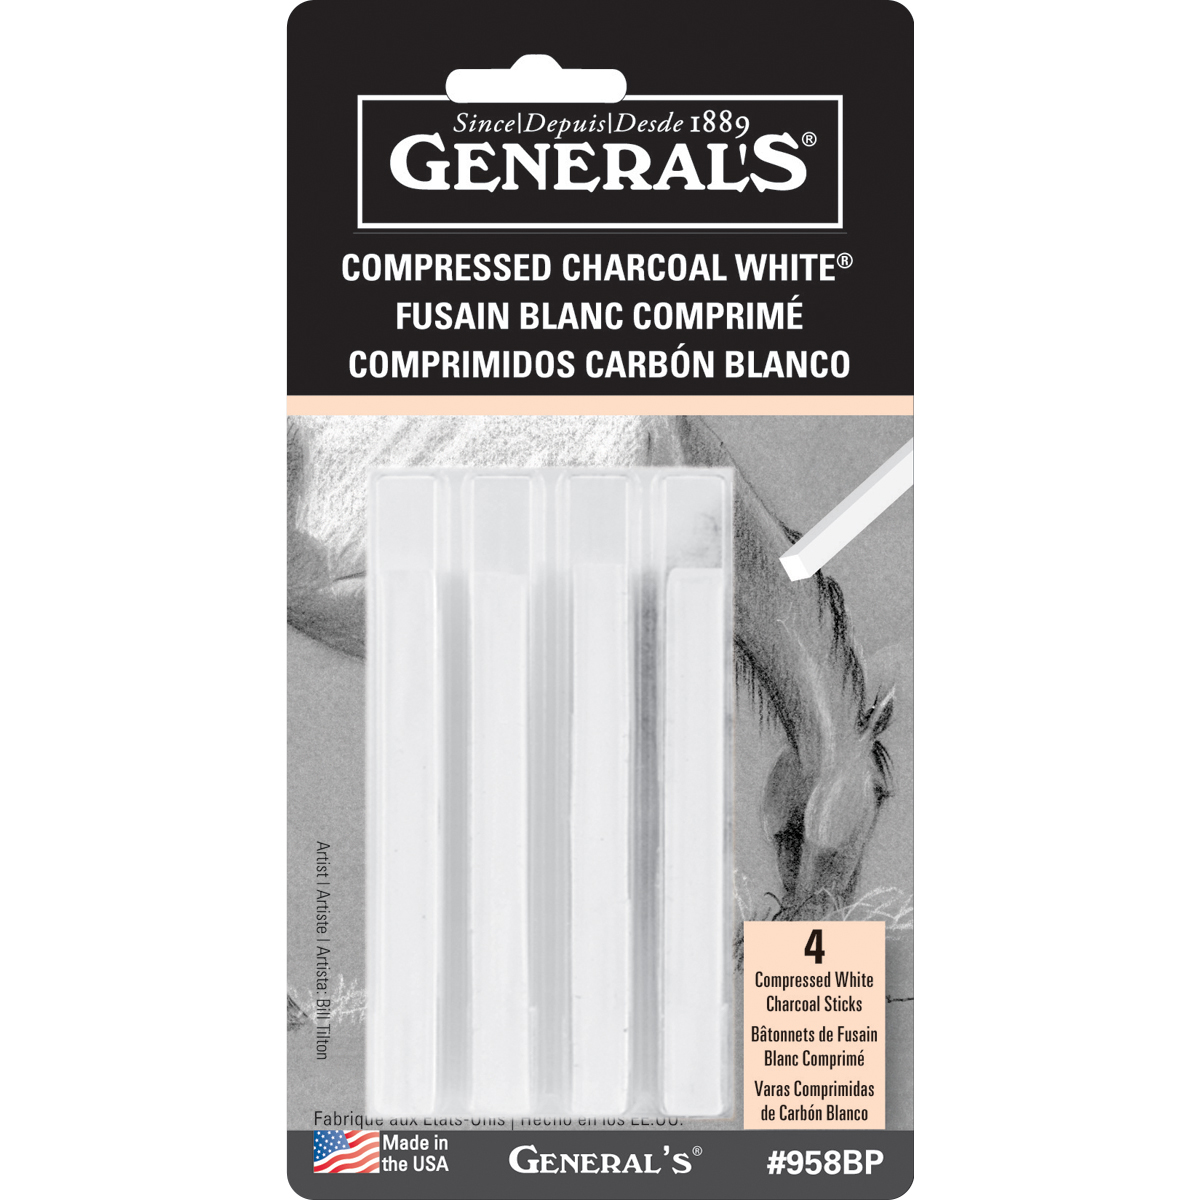 General's Compressed Charcoal White  4 Sticks